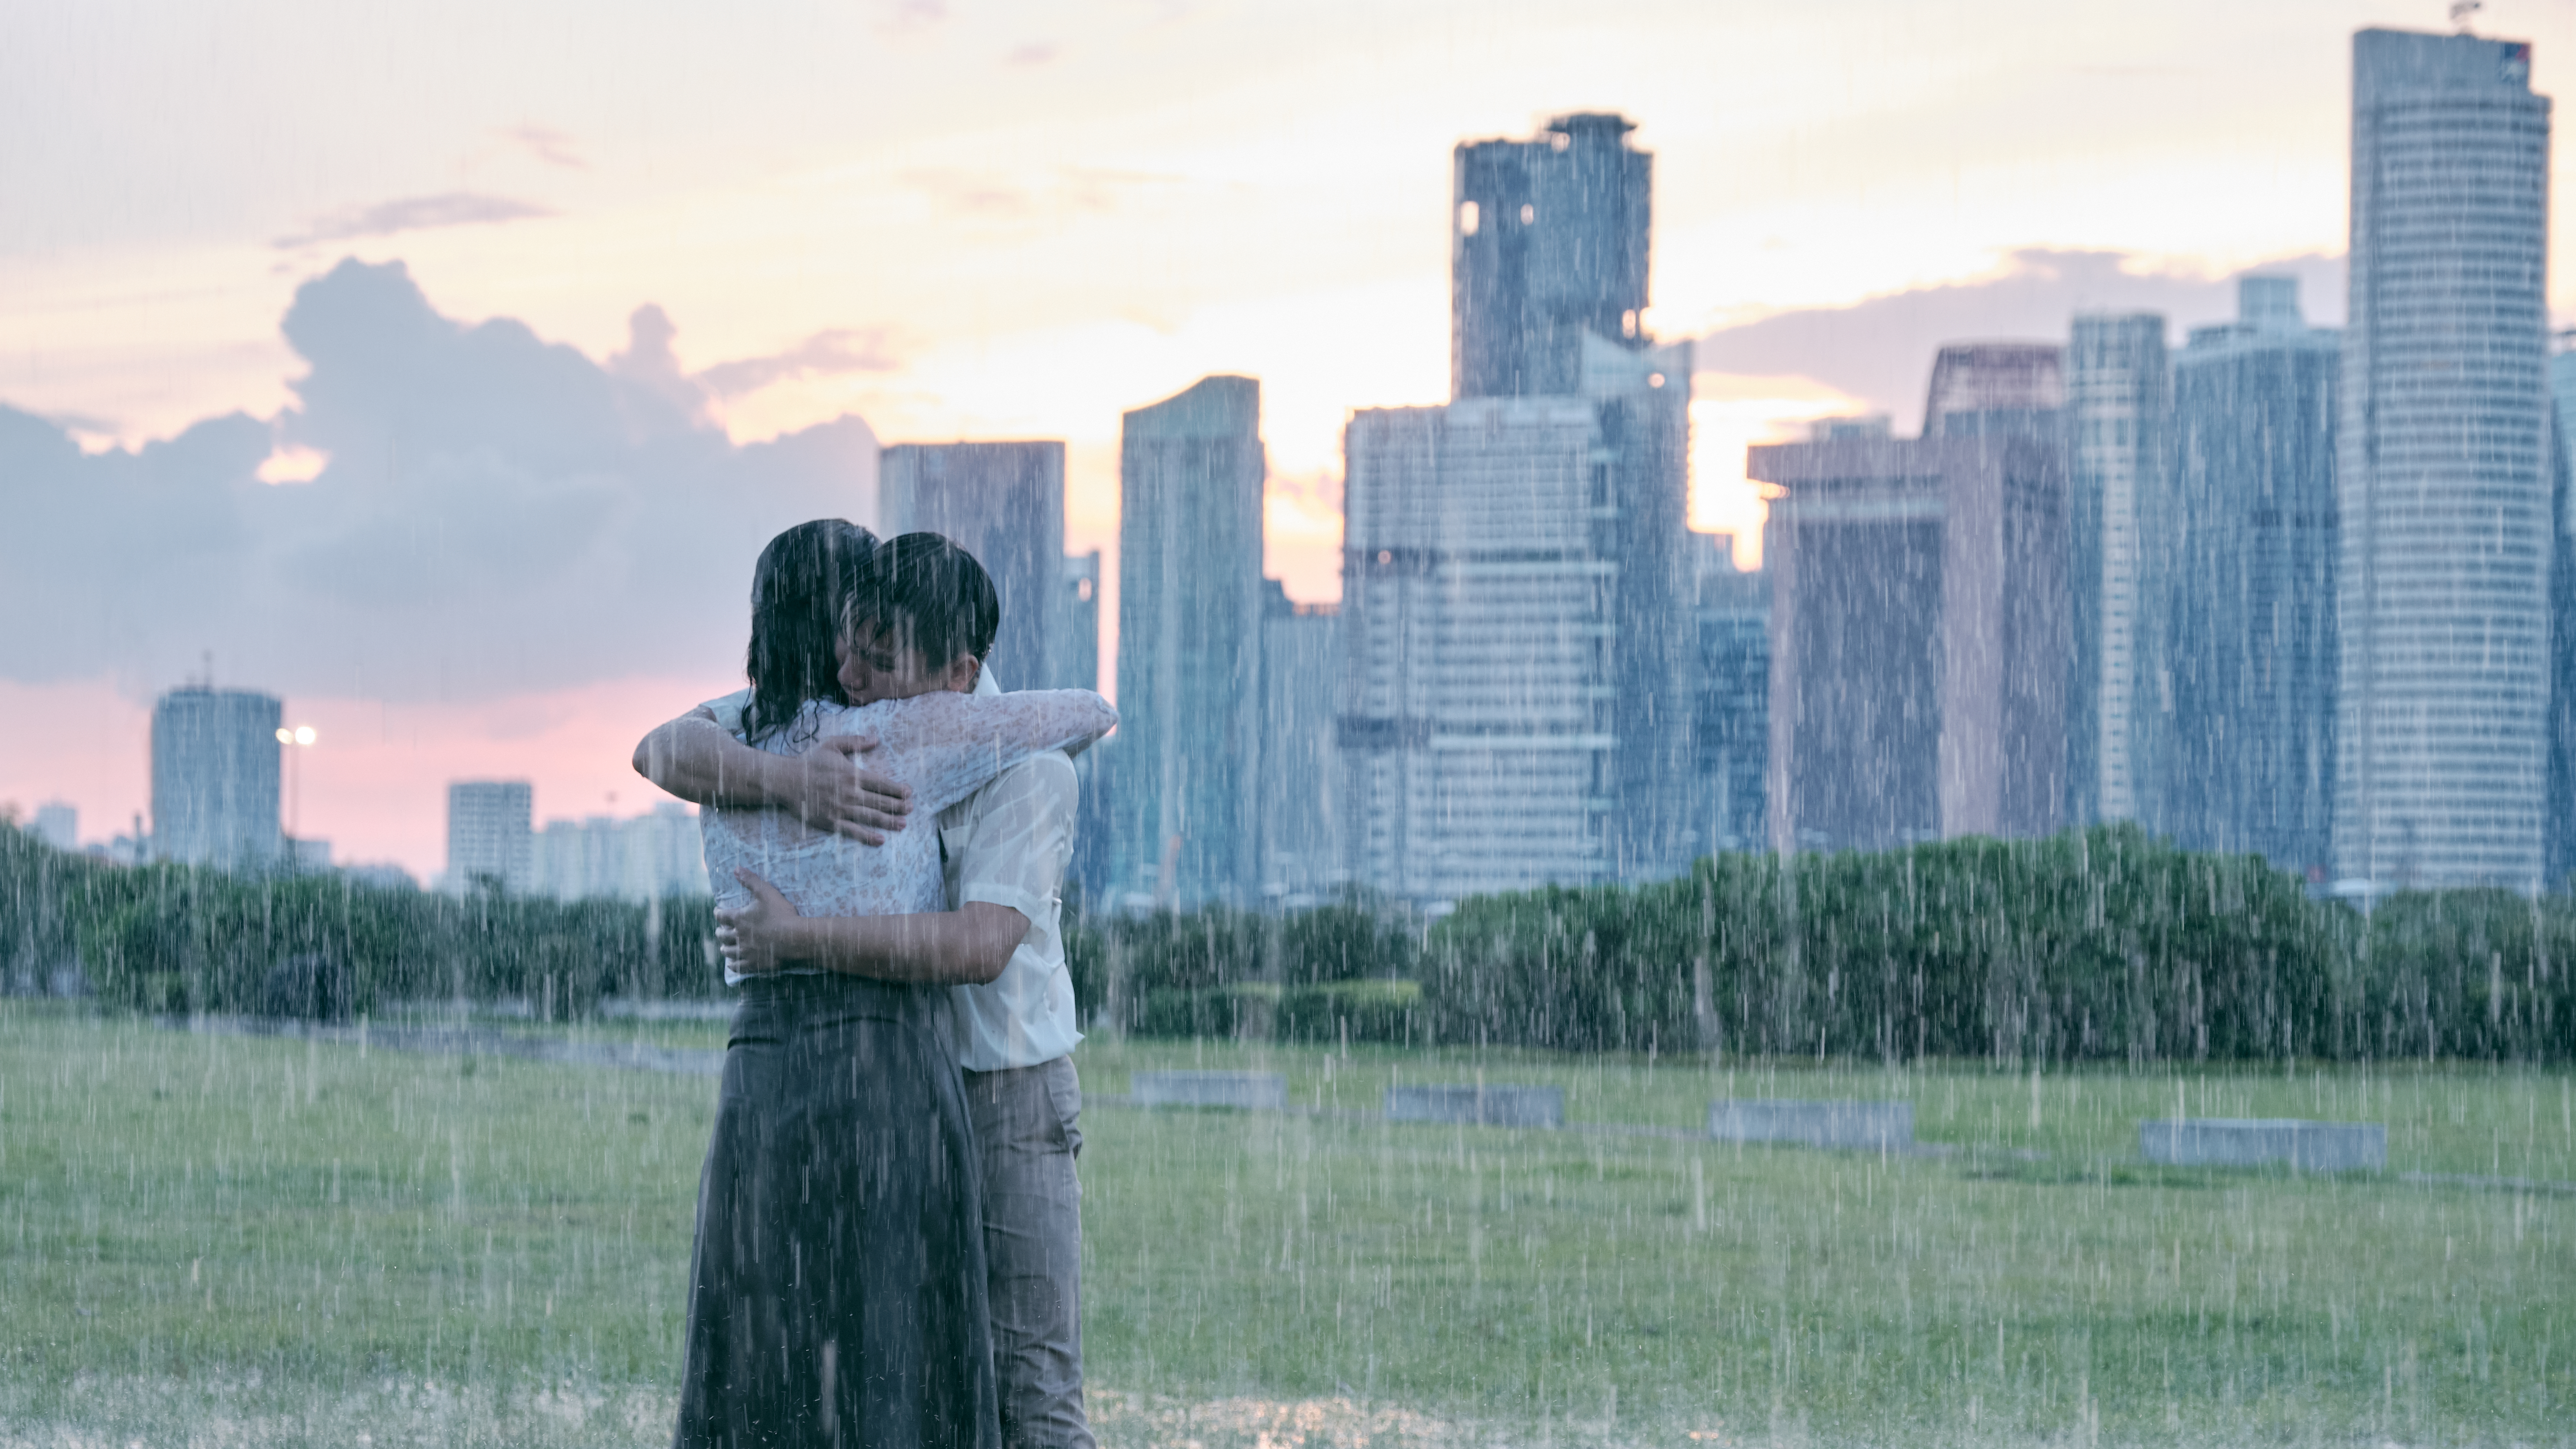 SGIFF had a sold out opening with Singapore drama Wet Season which was screened two more times in packed theatres. Photo Courtesy: SGIFF